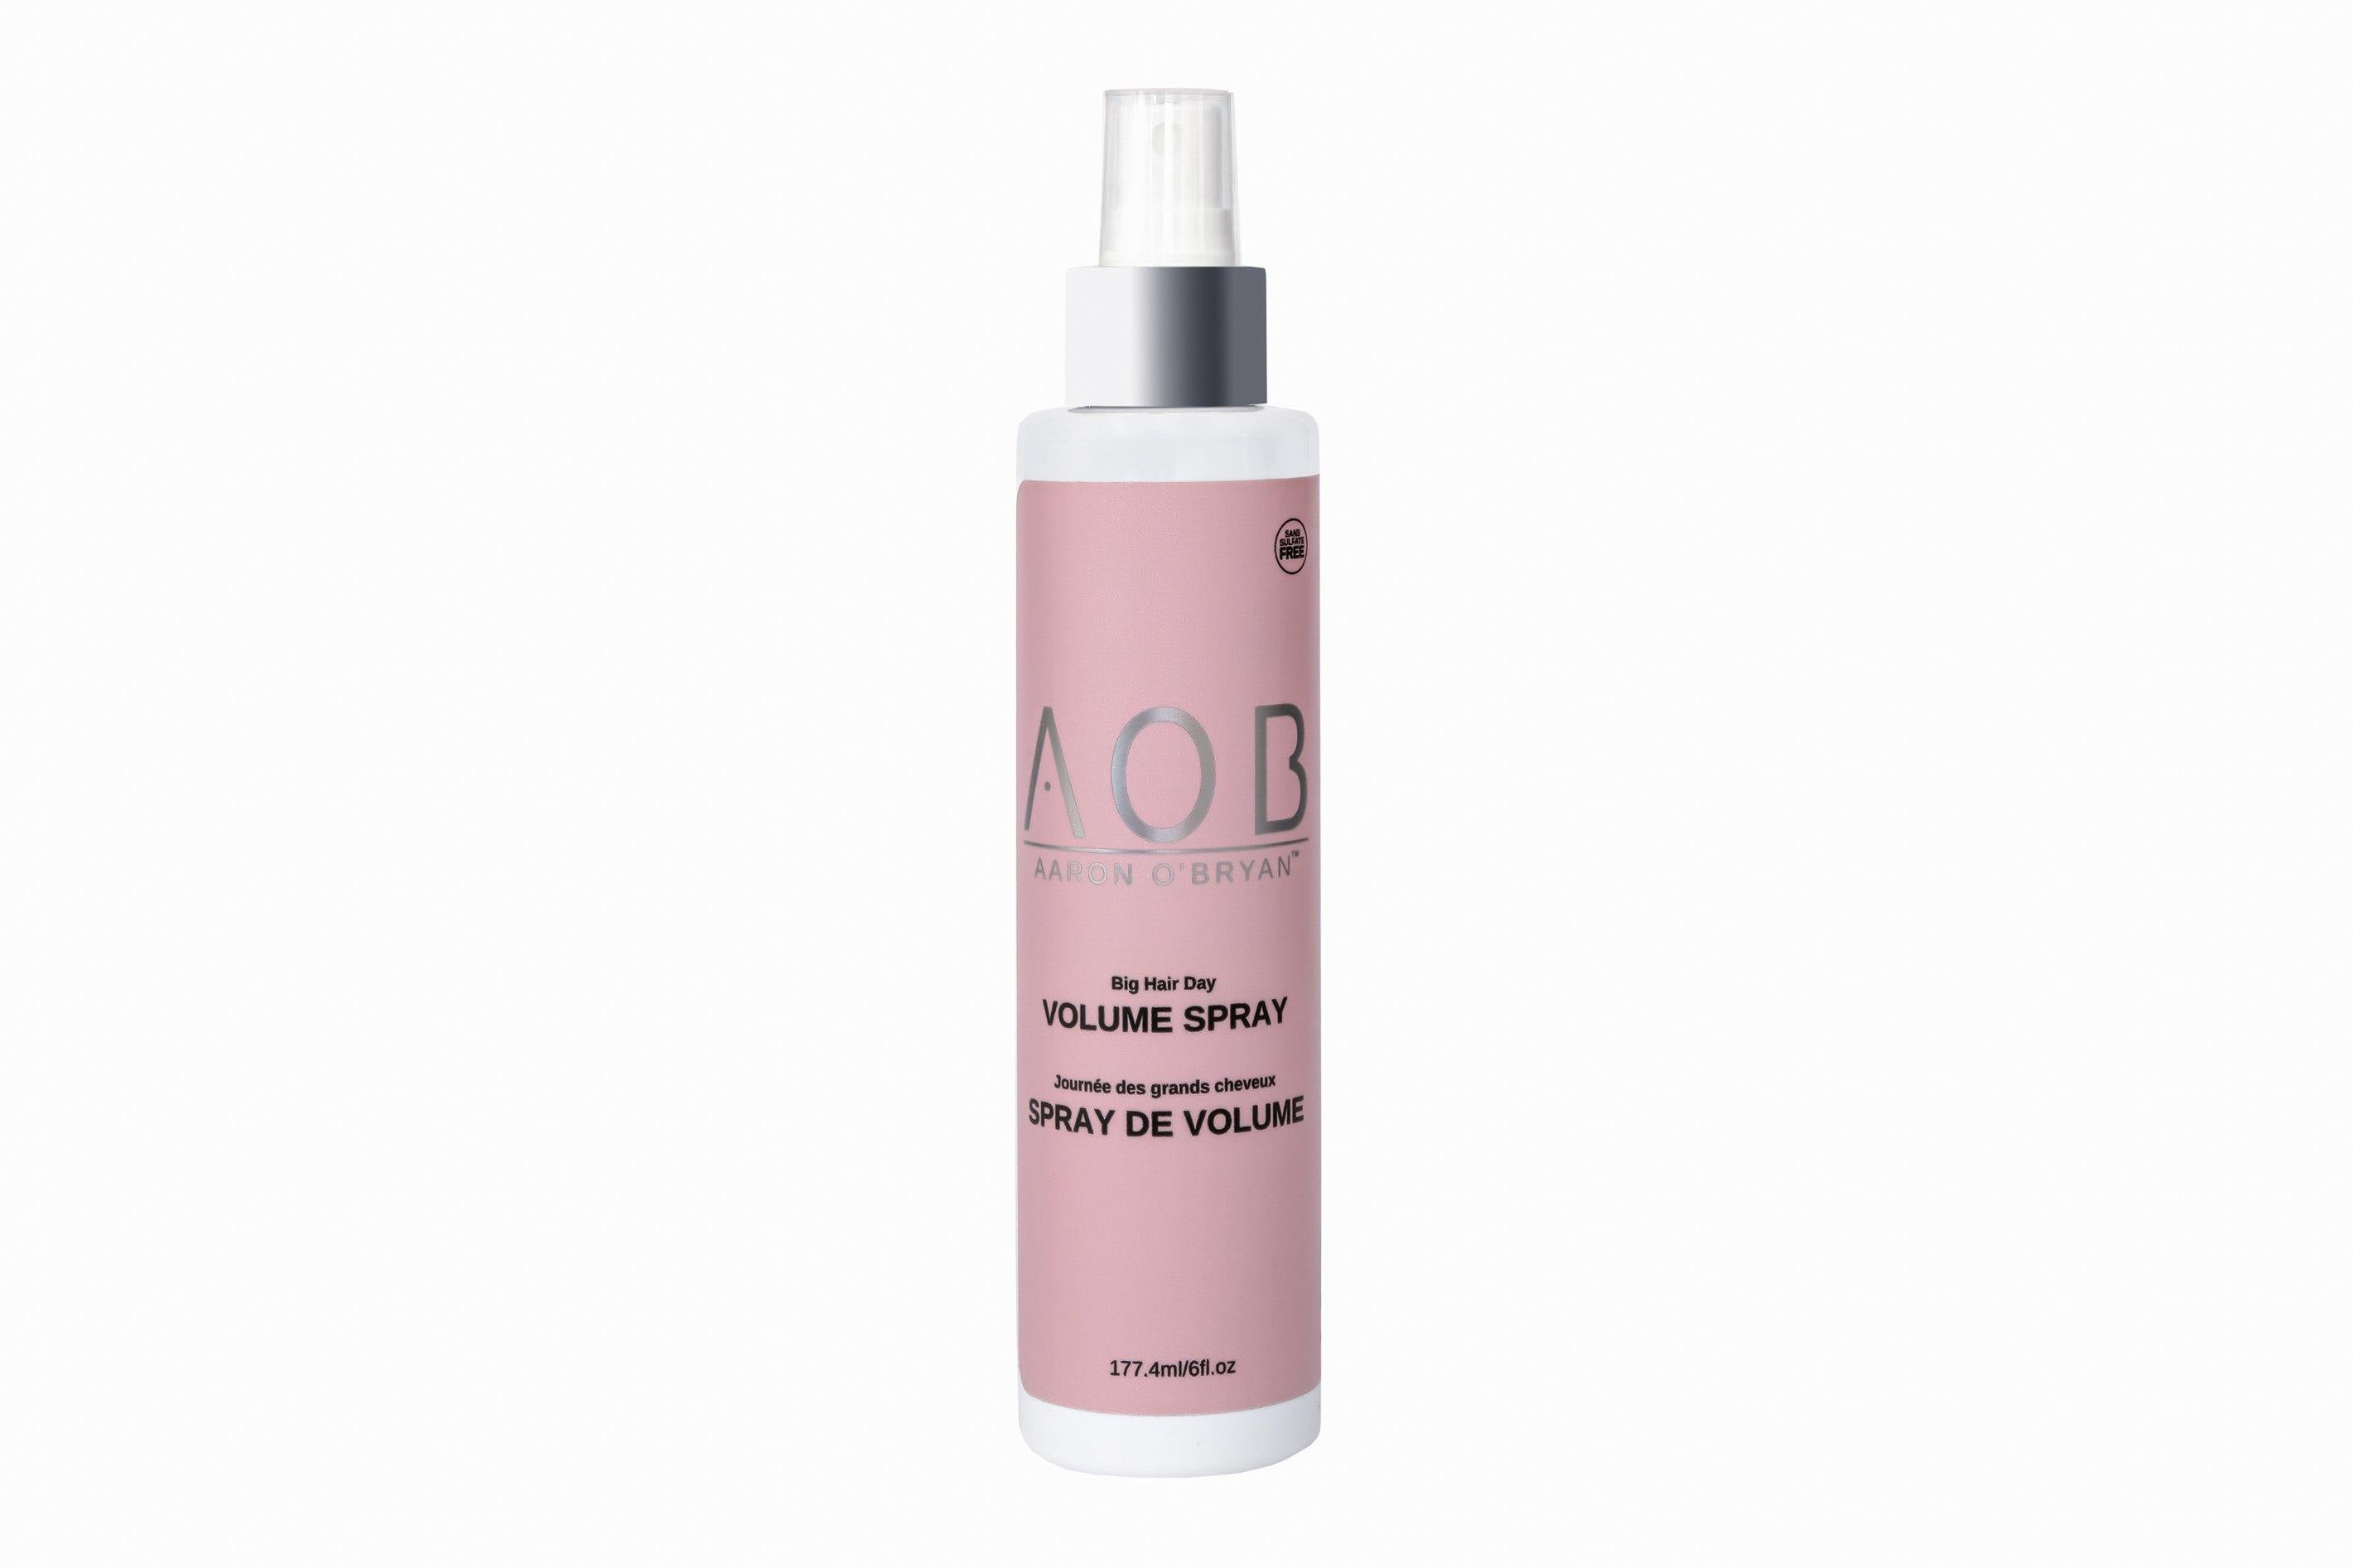 AOB Big Hair Day Volume Spray 6fl.oz - AOB Hair Products